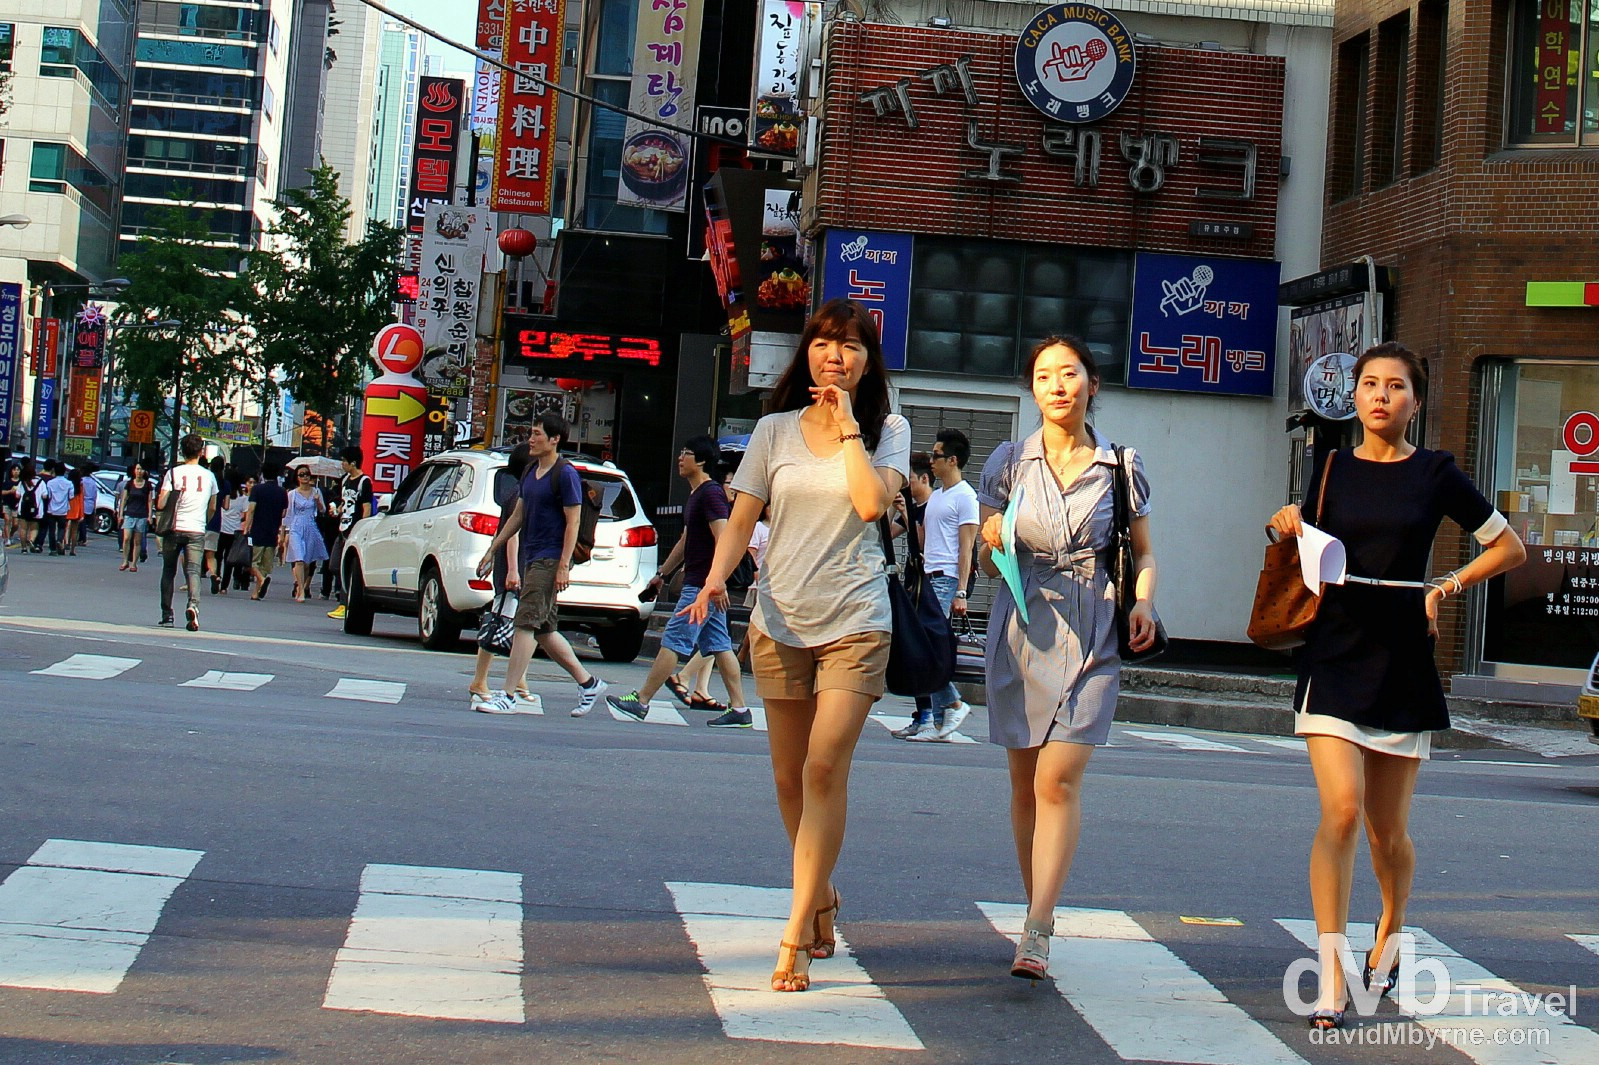 Gangnam-gu, Seoul, South Korea. July 8th 2012.